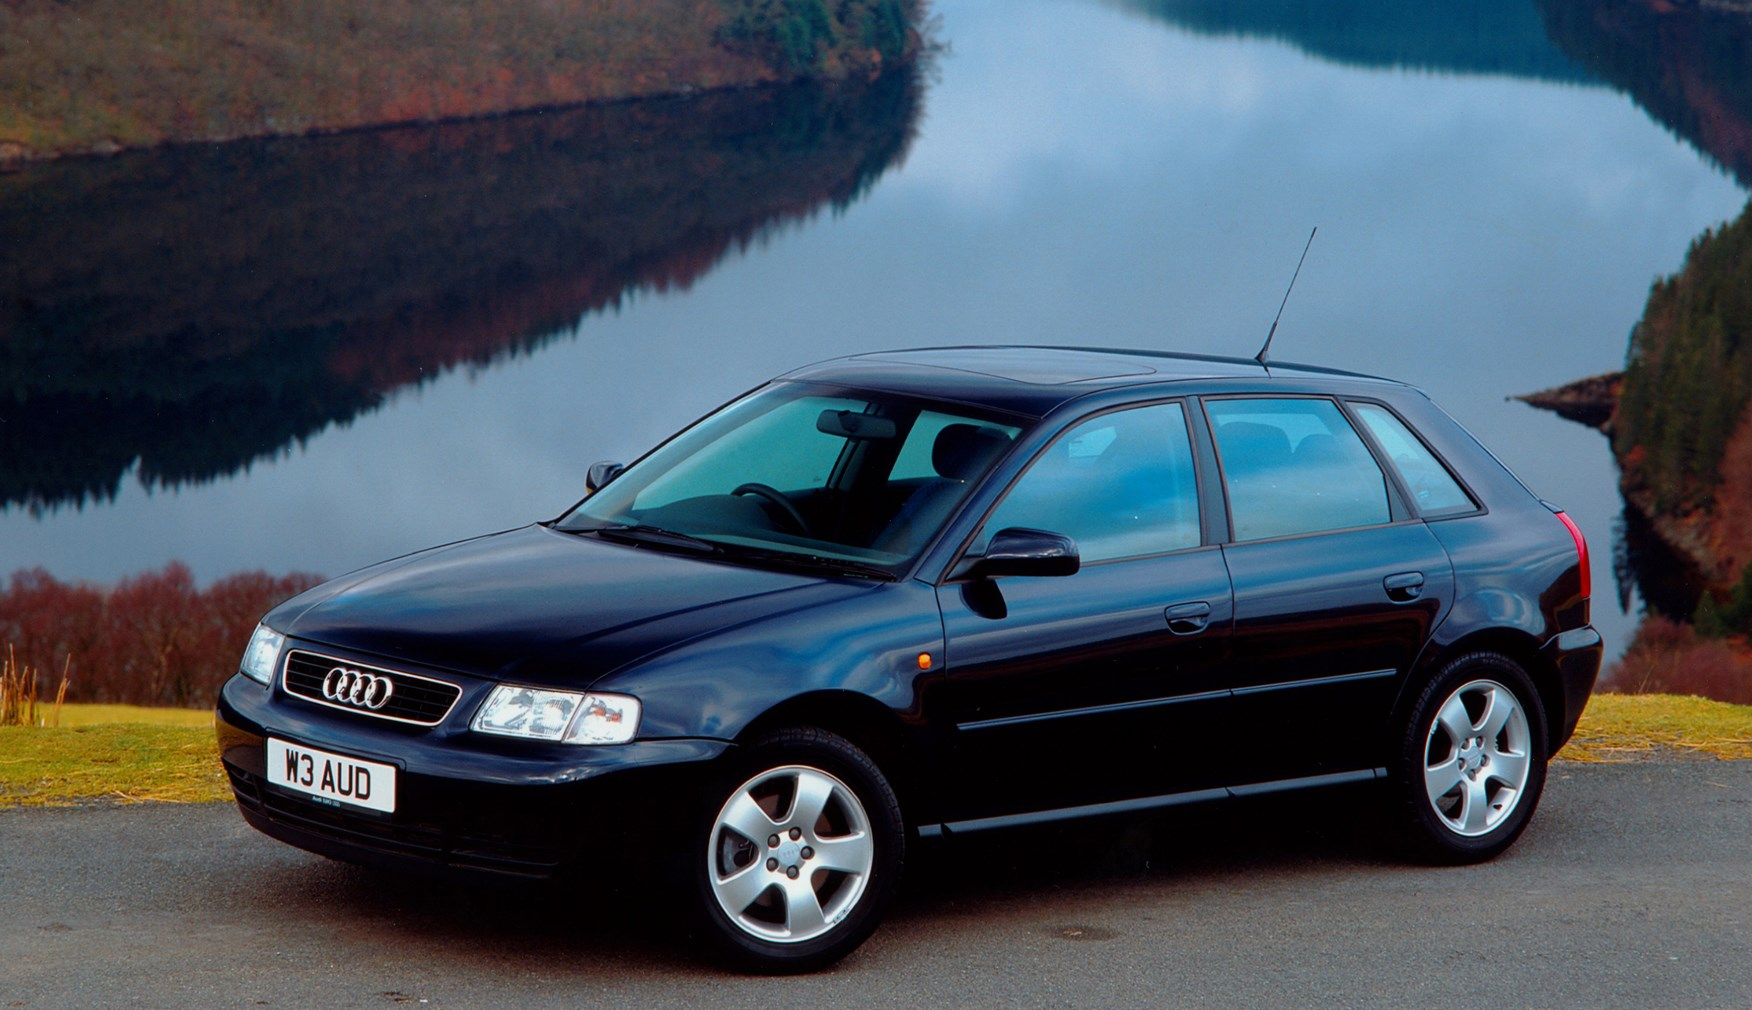 Audi A3 Hatchback (1996 - 2003) Photos